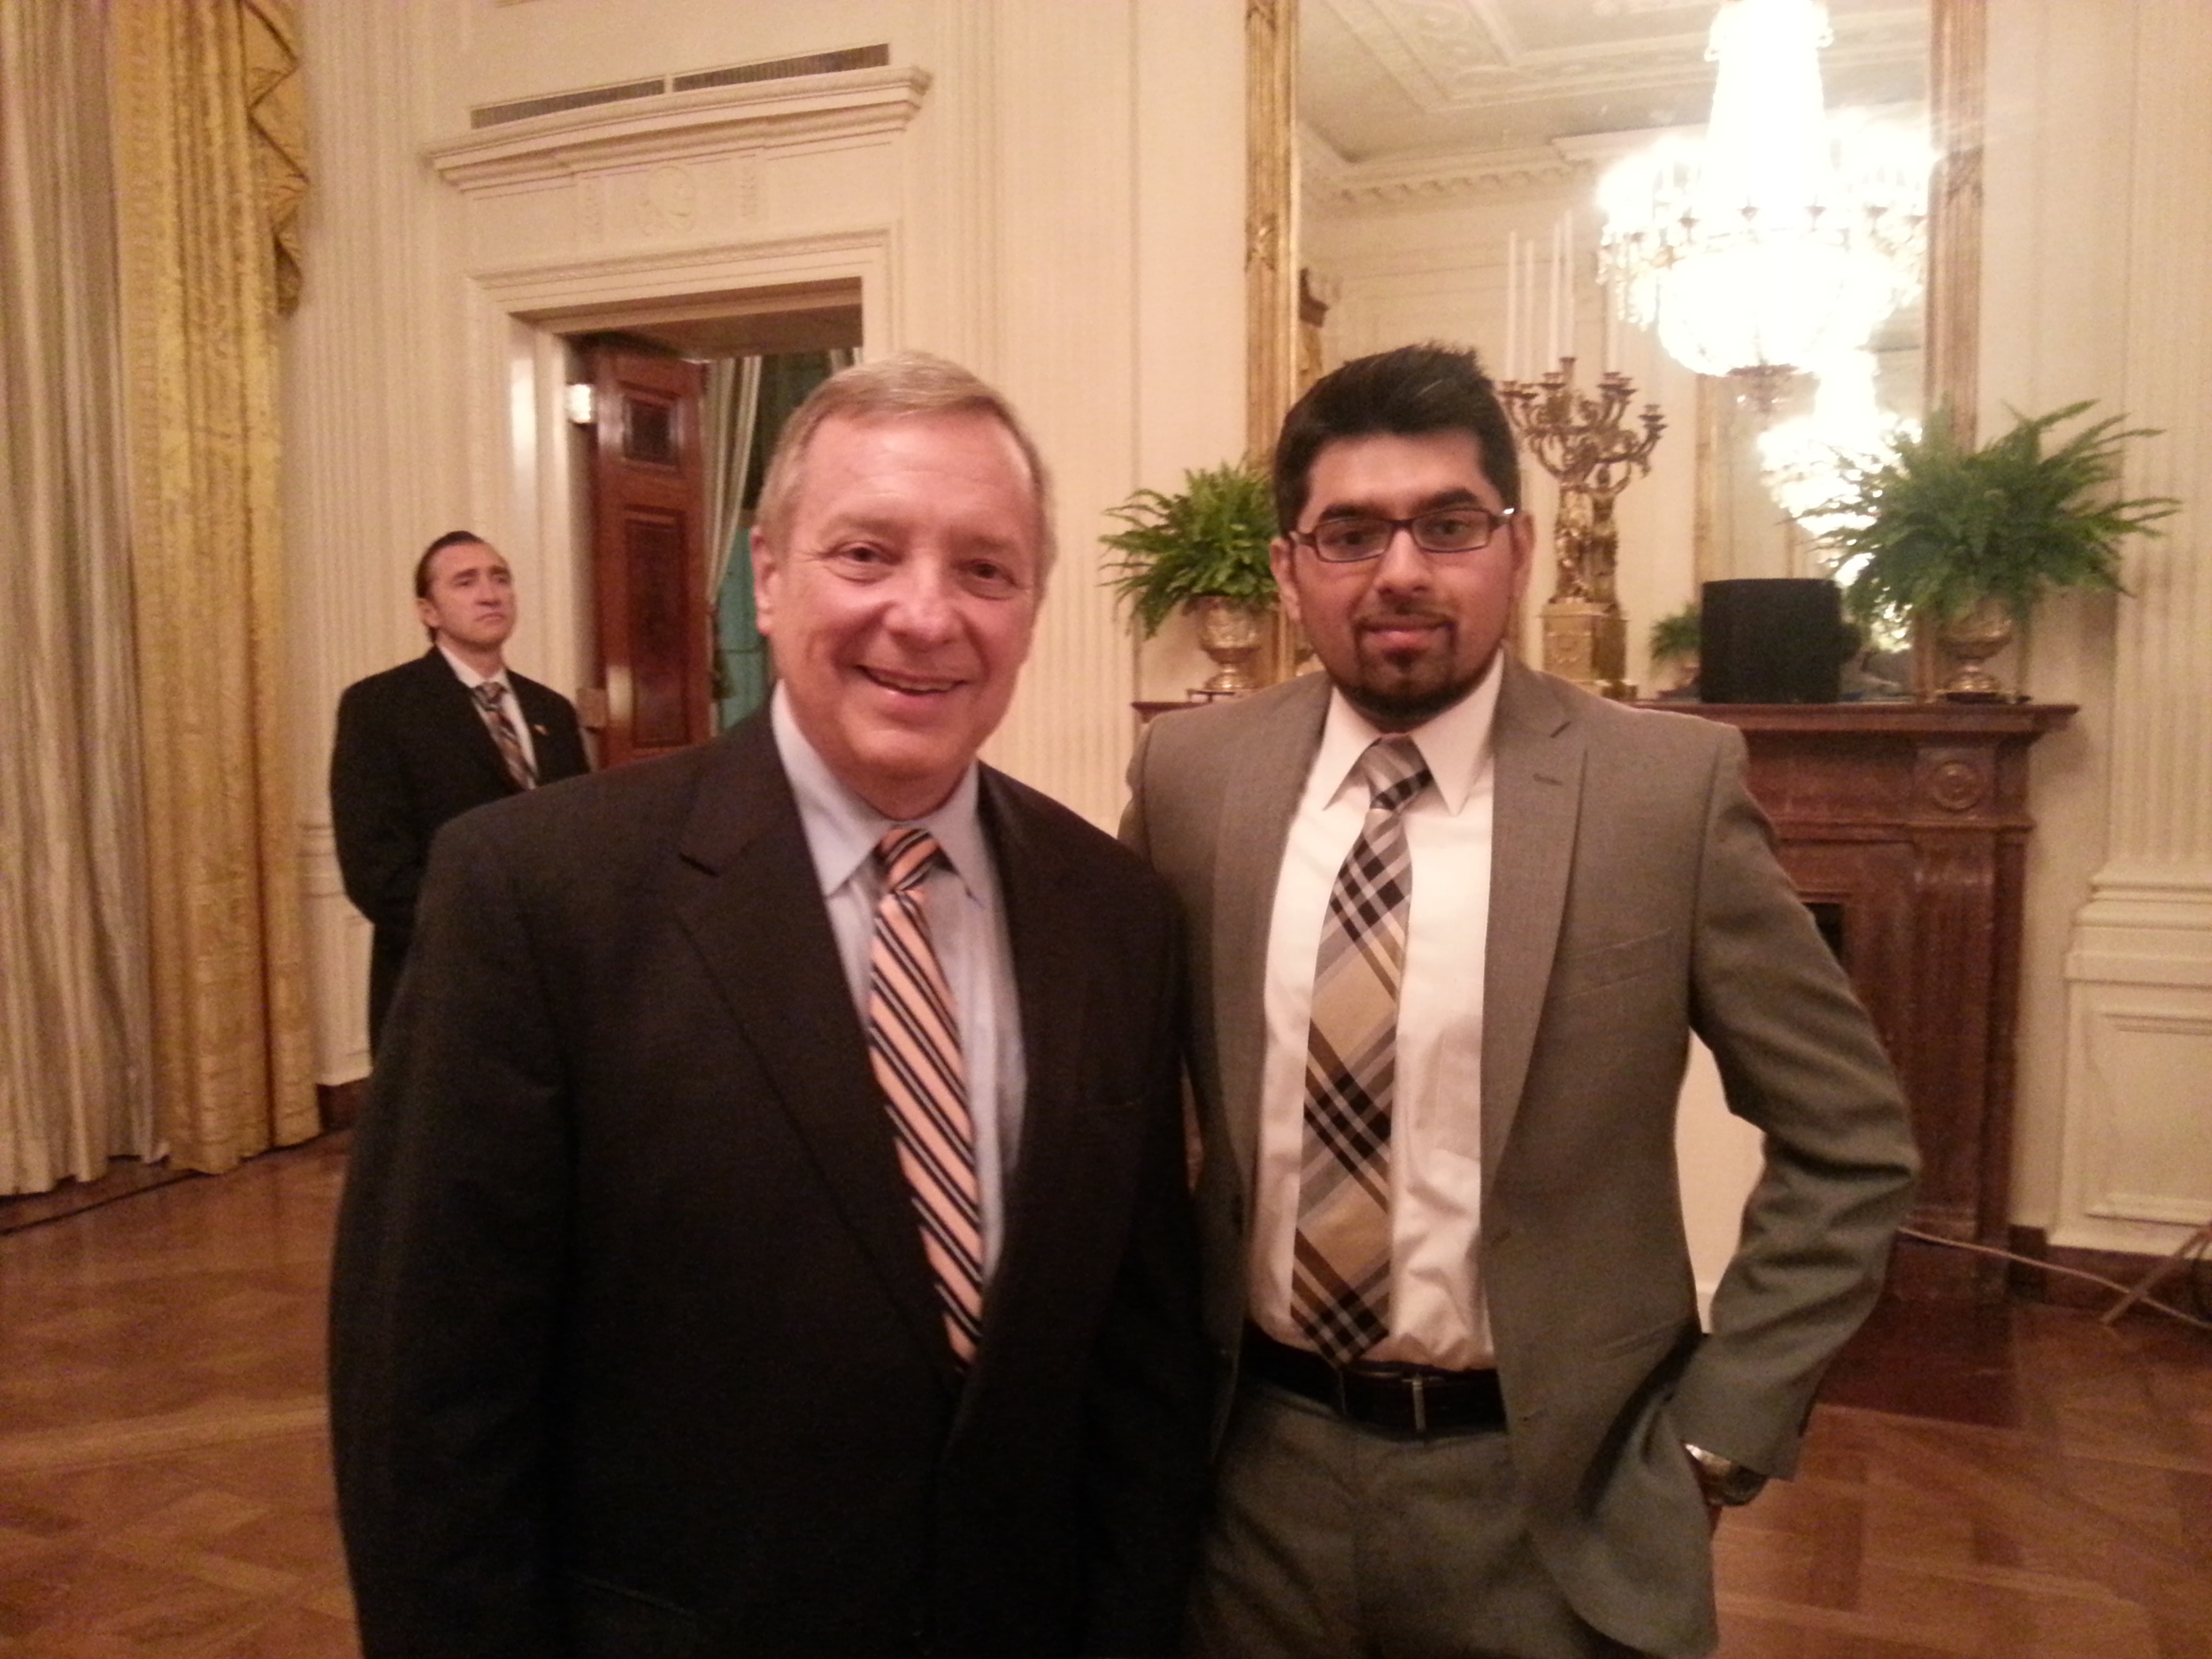 Dr. Chaudhry with Senator Dick Durbin discussing access to dental care